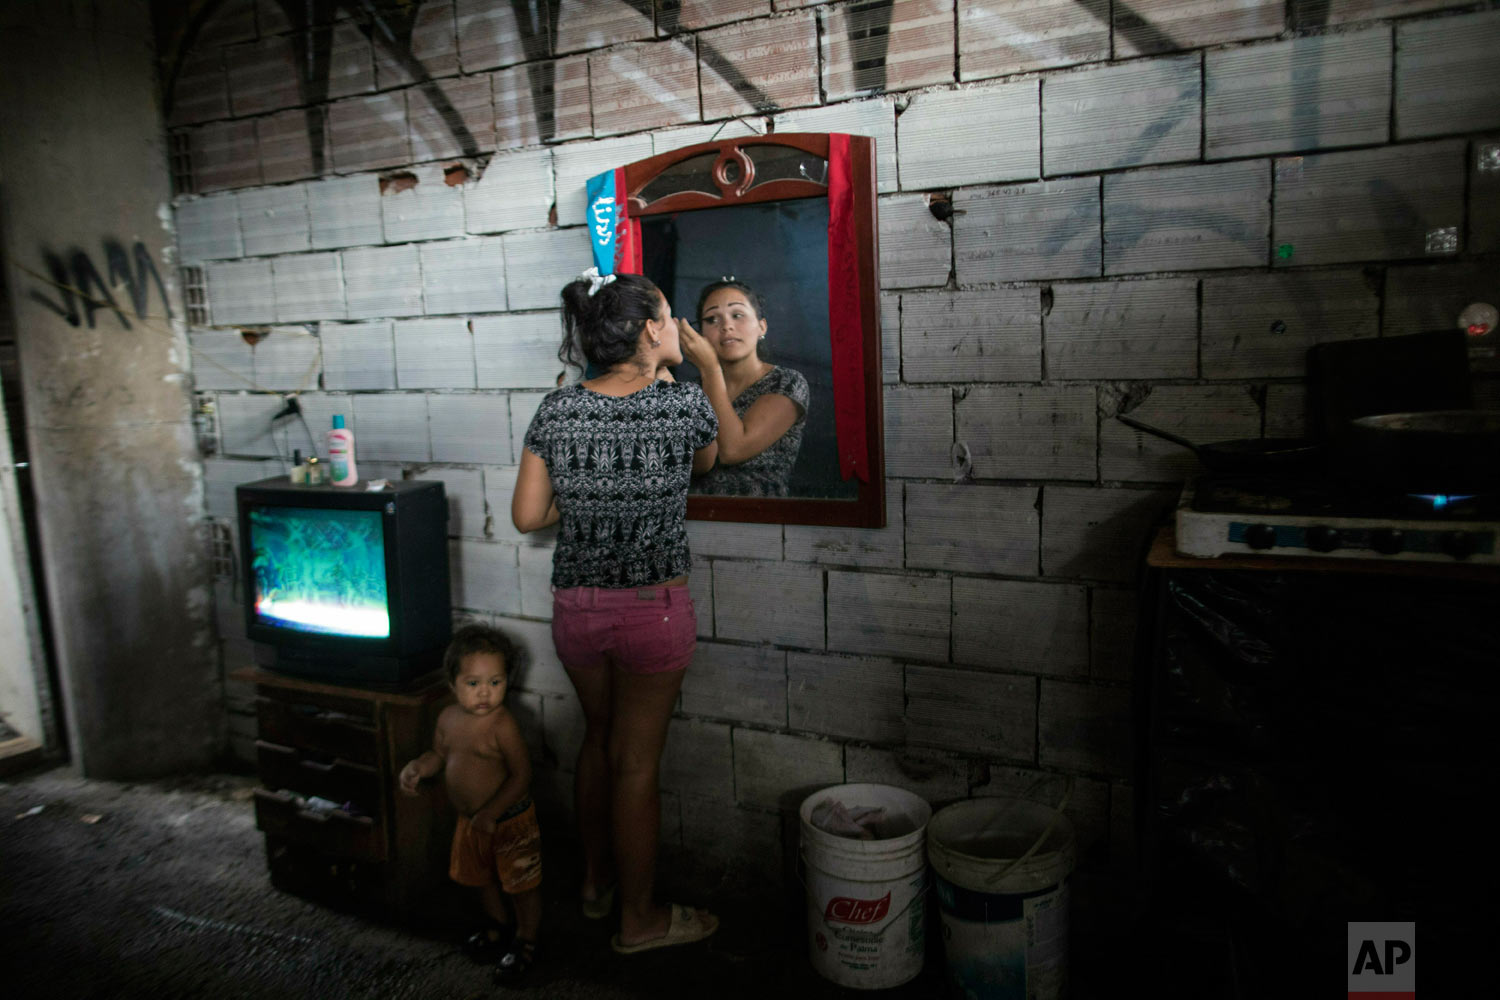 Adriana Rodriguez applies makeup in her room that shares with her three sons and seven other members of other family, in a building occupied by squatting families in Caracas, Venezuela, Monday, May 6, 2019. (AP Photo/Rodrigo Abd)